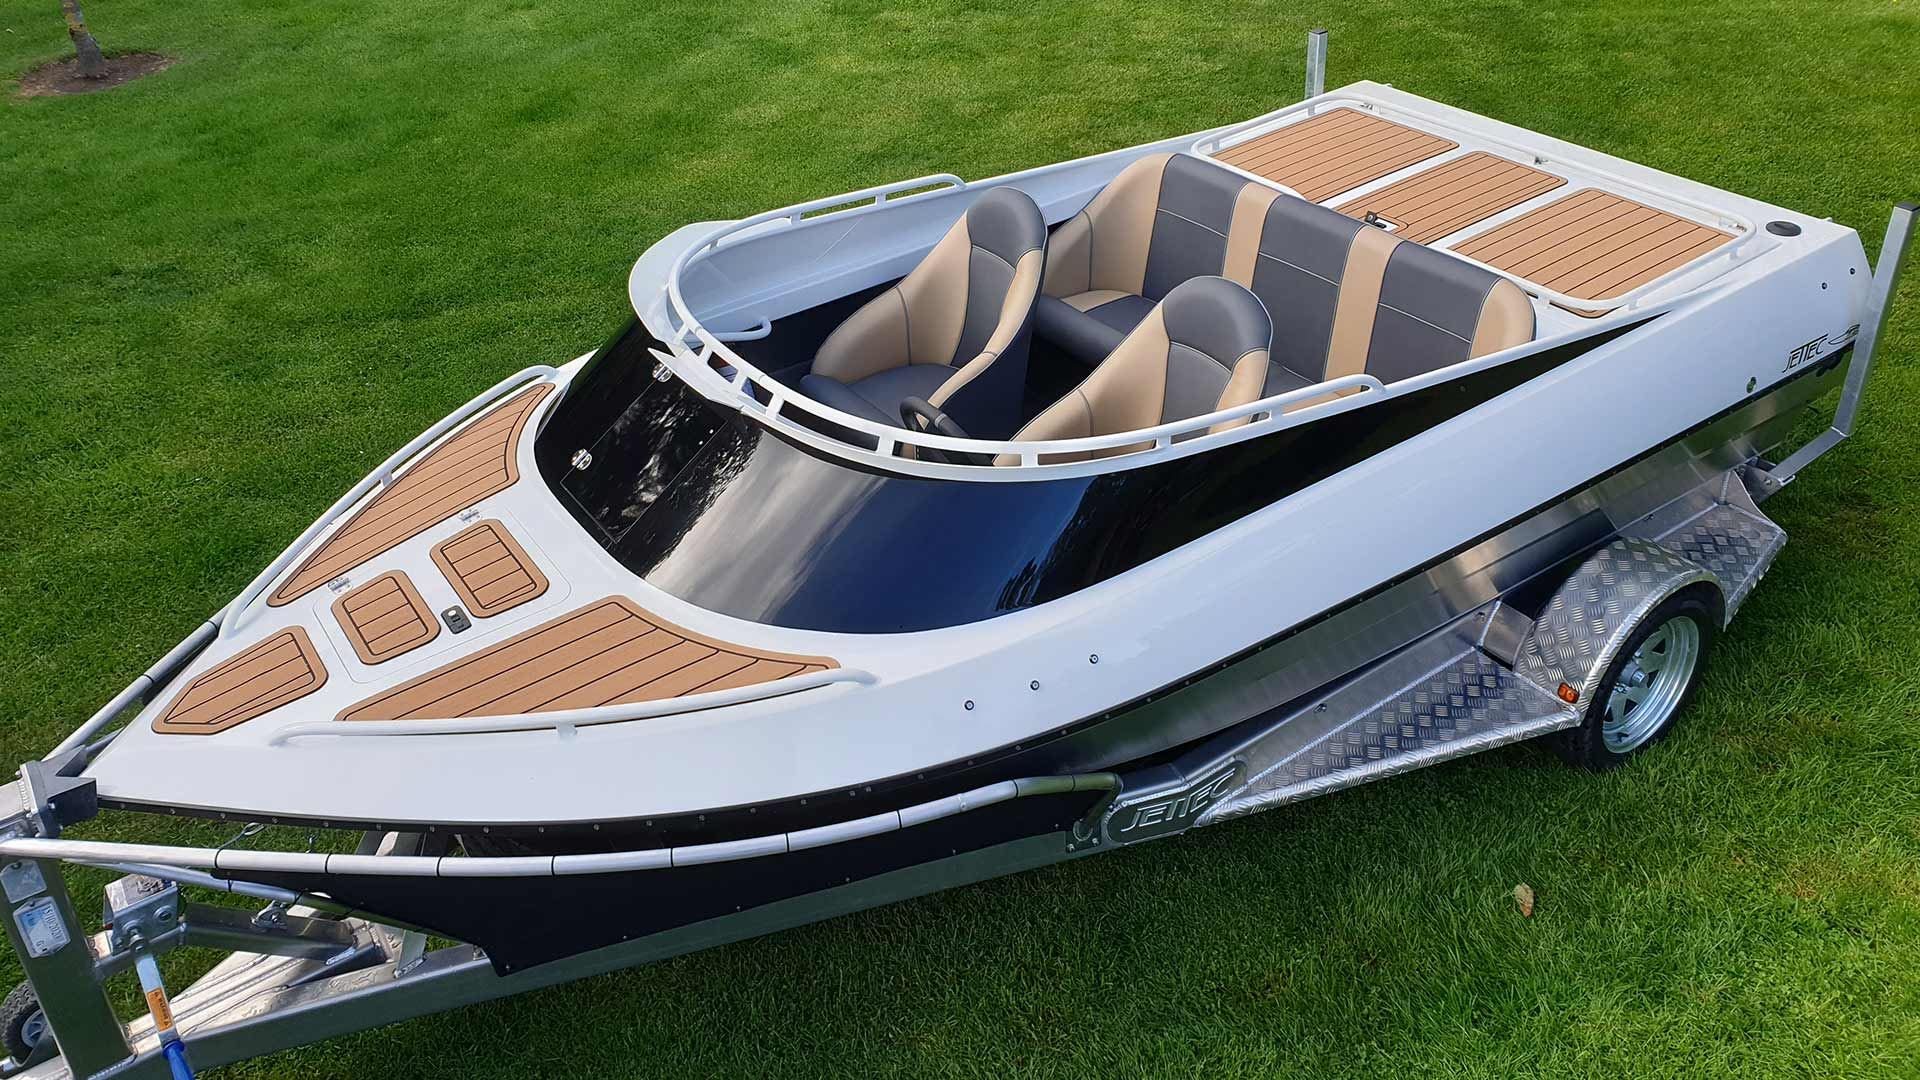 Jettec Jet Boats Ltd